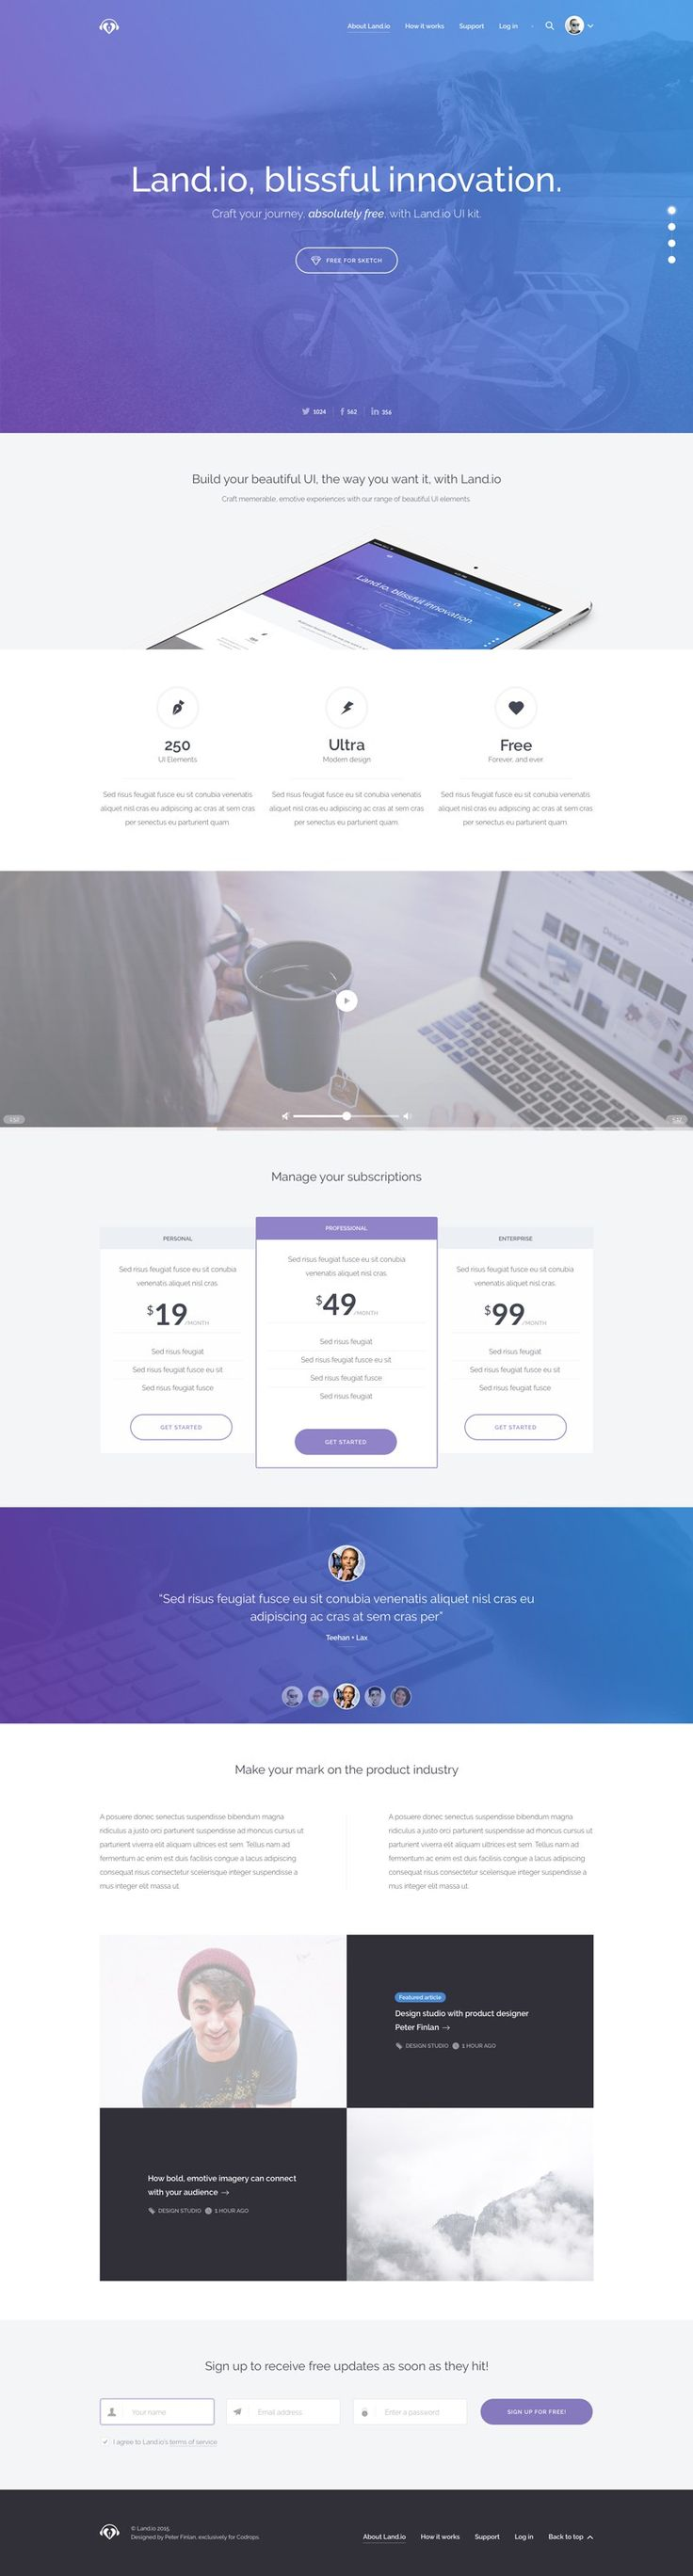 A Versatile Landing Page UI Kit Designed In Sketch With Thoughtfully  Crafted Website Elements That Will Take Your Website Project To The Next  Level.